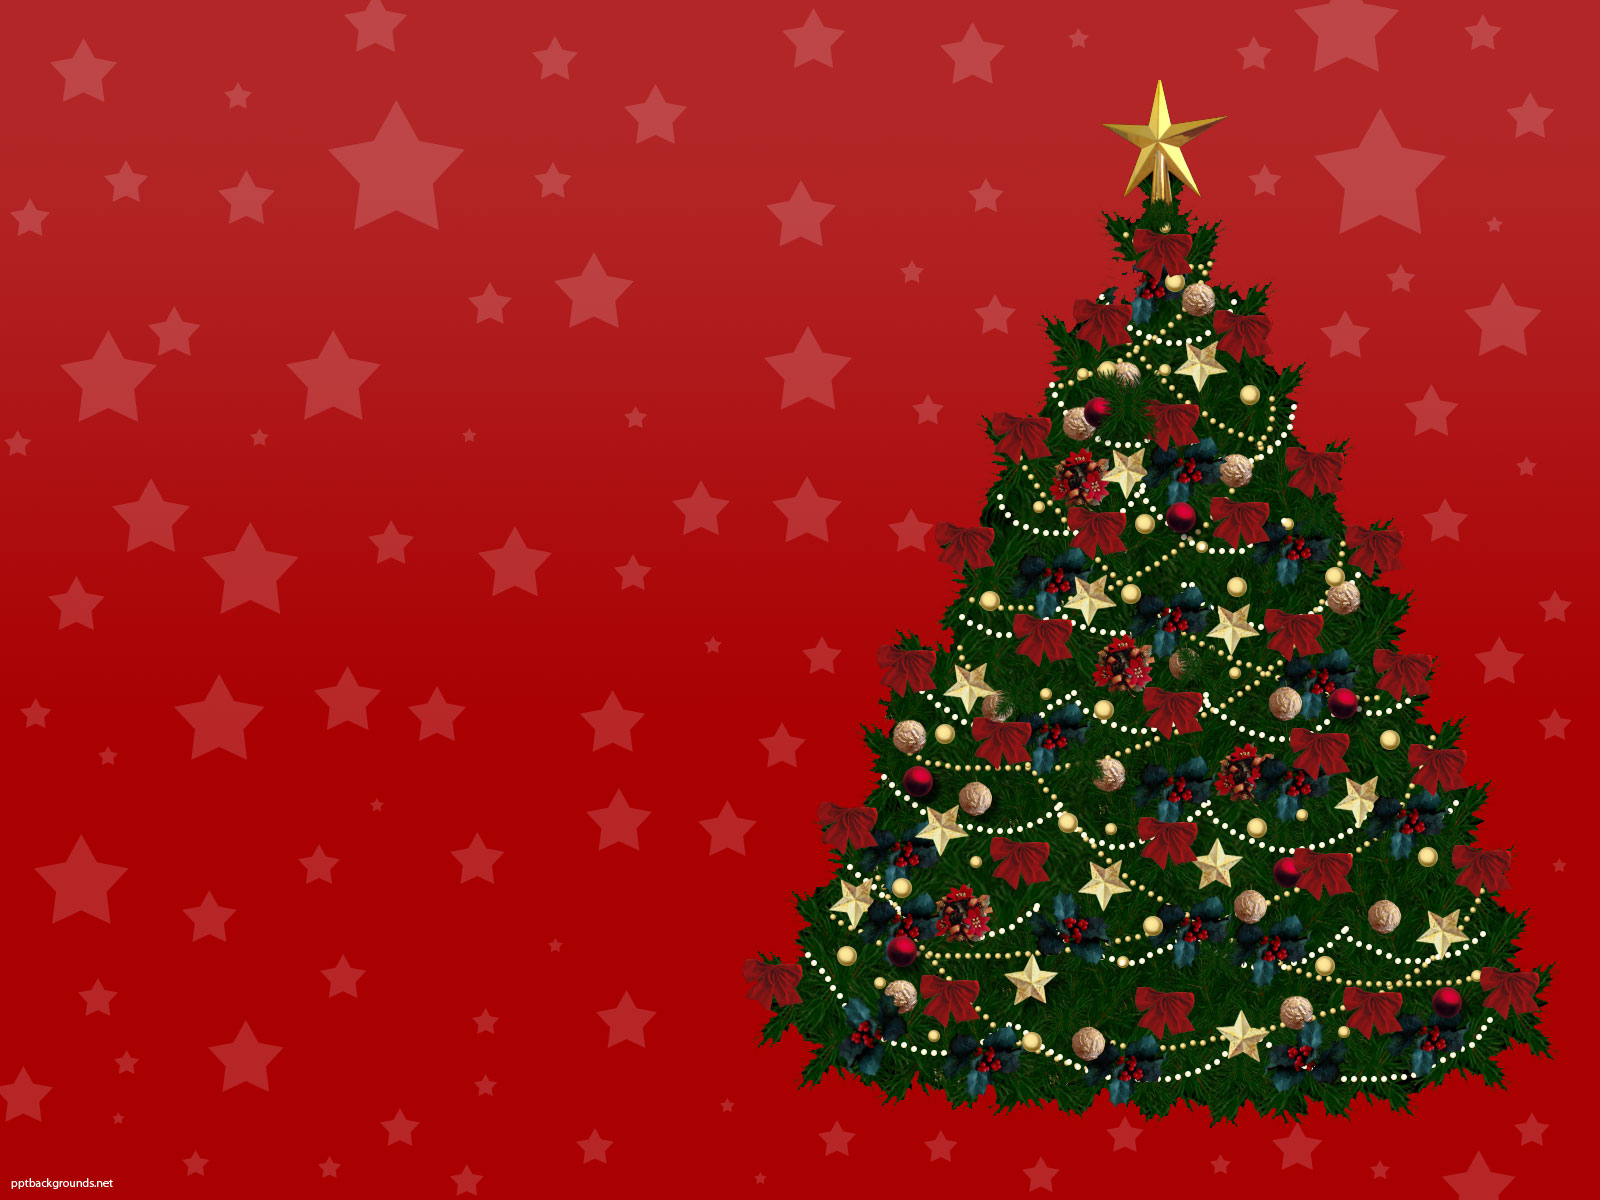 1600x1200 - Christmas Trees Backgrounds 29